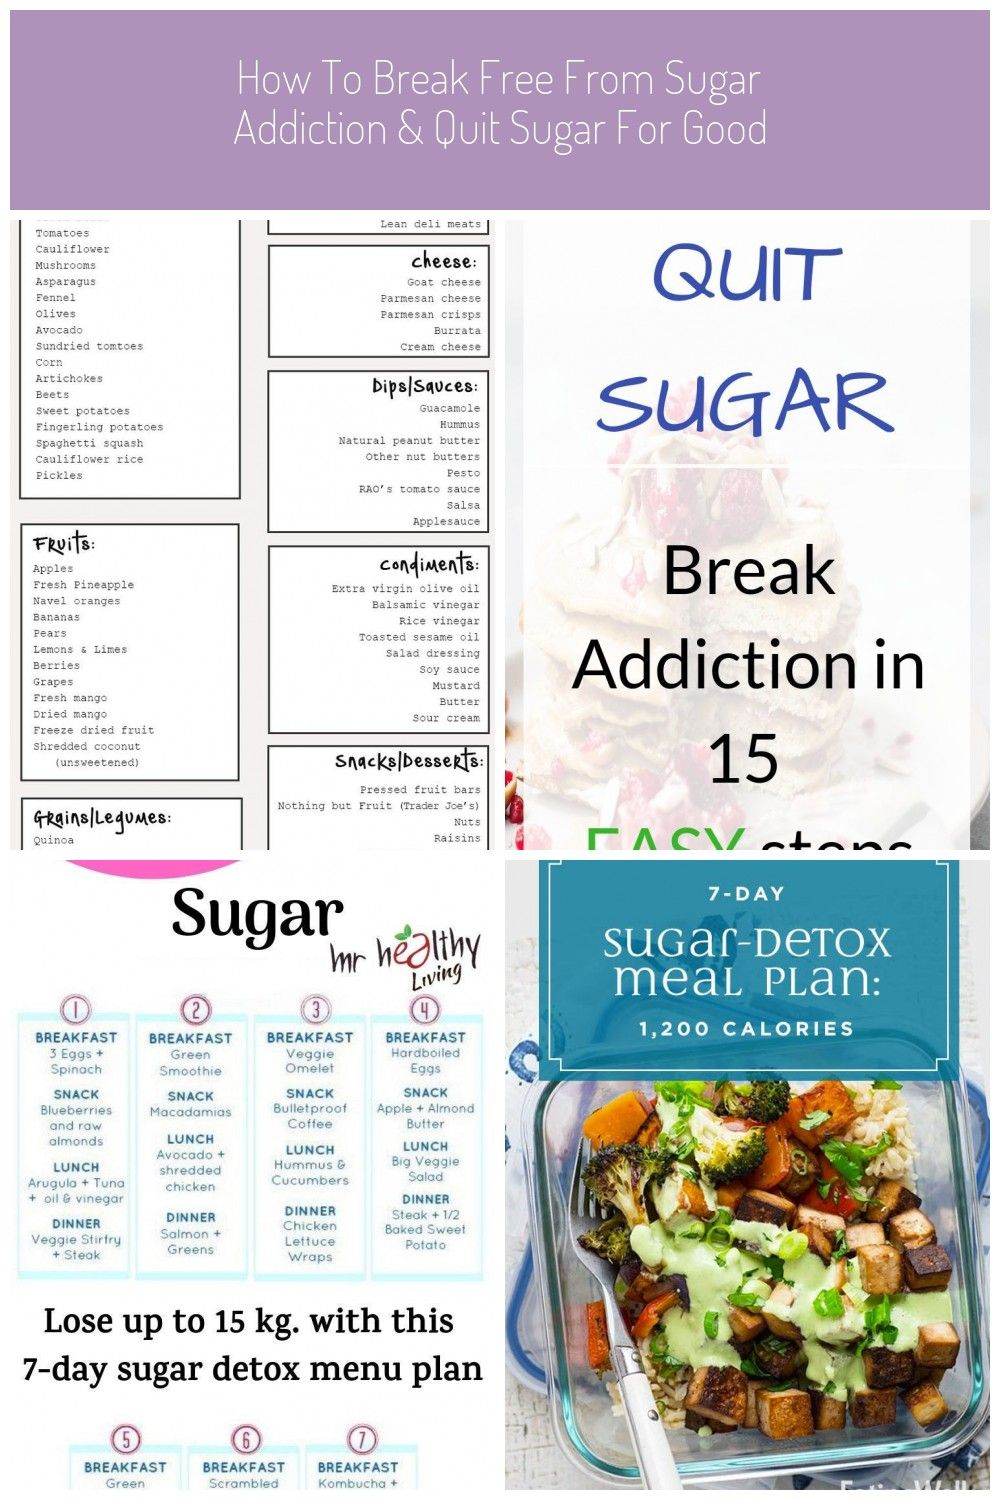 Sugar Detox Einkaufsliste DetoxEinkaufsliste nosugardietplan SugarHow to break free from sugar addiction and quit sugar for good I m sure you ve heard all about how bad sugar is for youGive your body a break from sugar and lose weight with this  #sugar detox plan Sugar Detox Einkaufsliste DetoxEinkaufsliste nosugardietplan SugarHOW TO BREAK FREE FROM SUGAR ADDICTION QUIT SUGAR FOR GOOD7 Day Sugar Detox Meal Plan 1 200 CaloriesTough Diet Food Cleanses Dietas dietplan1month3 Day Sugar Detox P